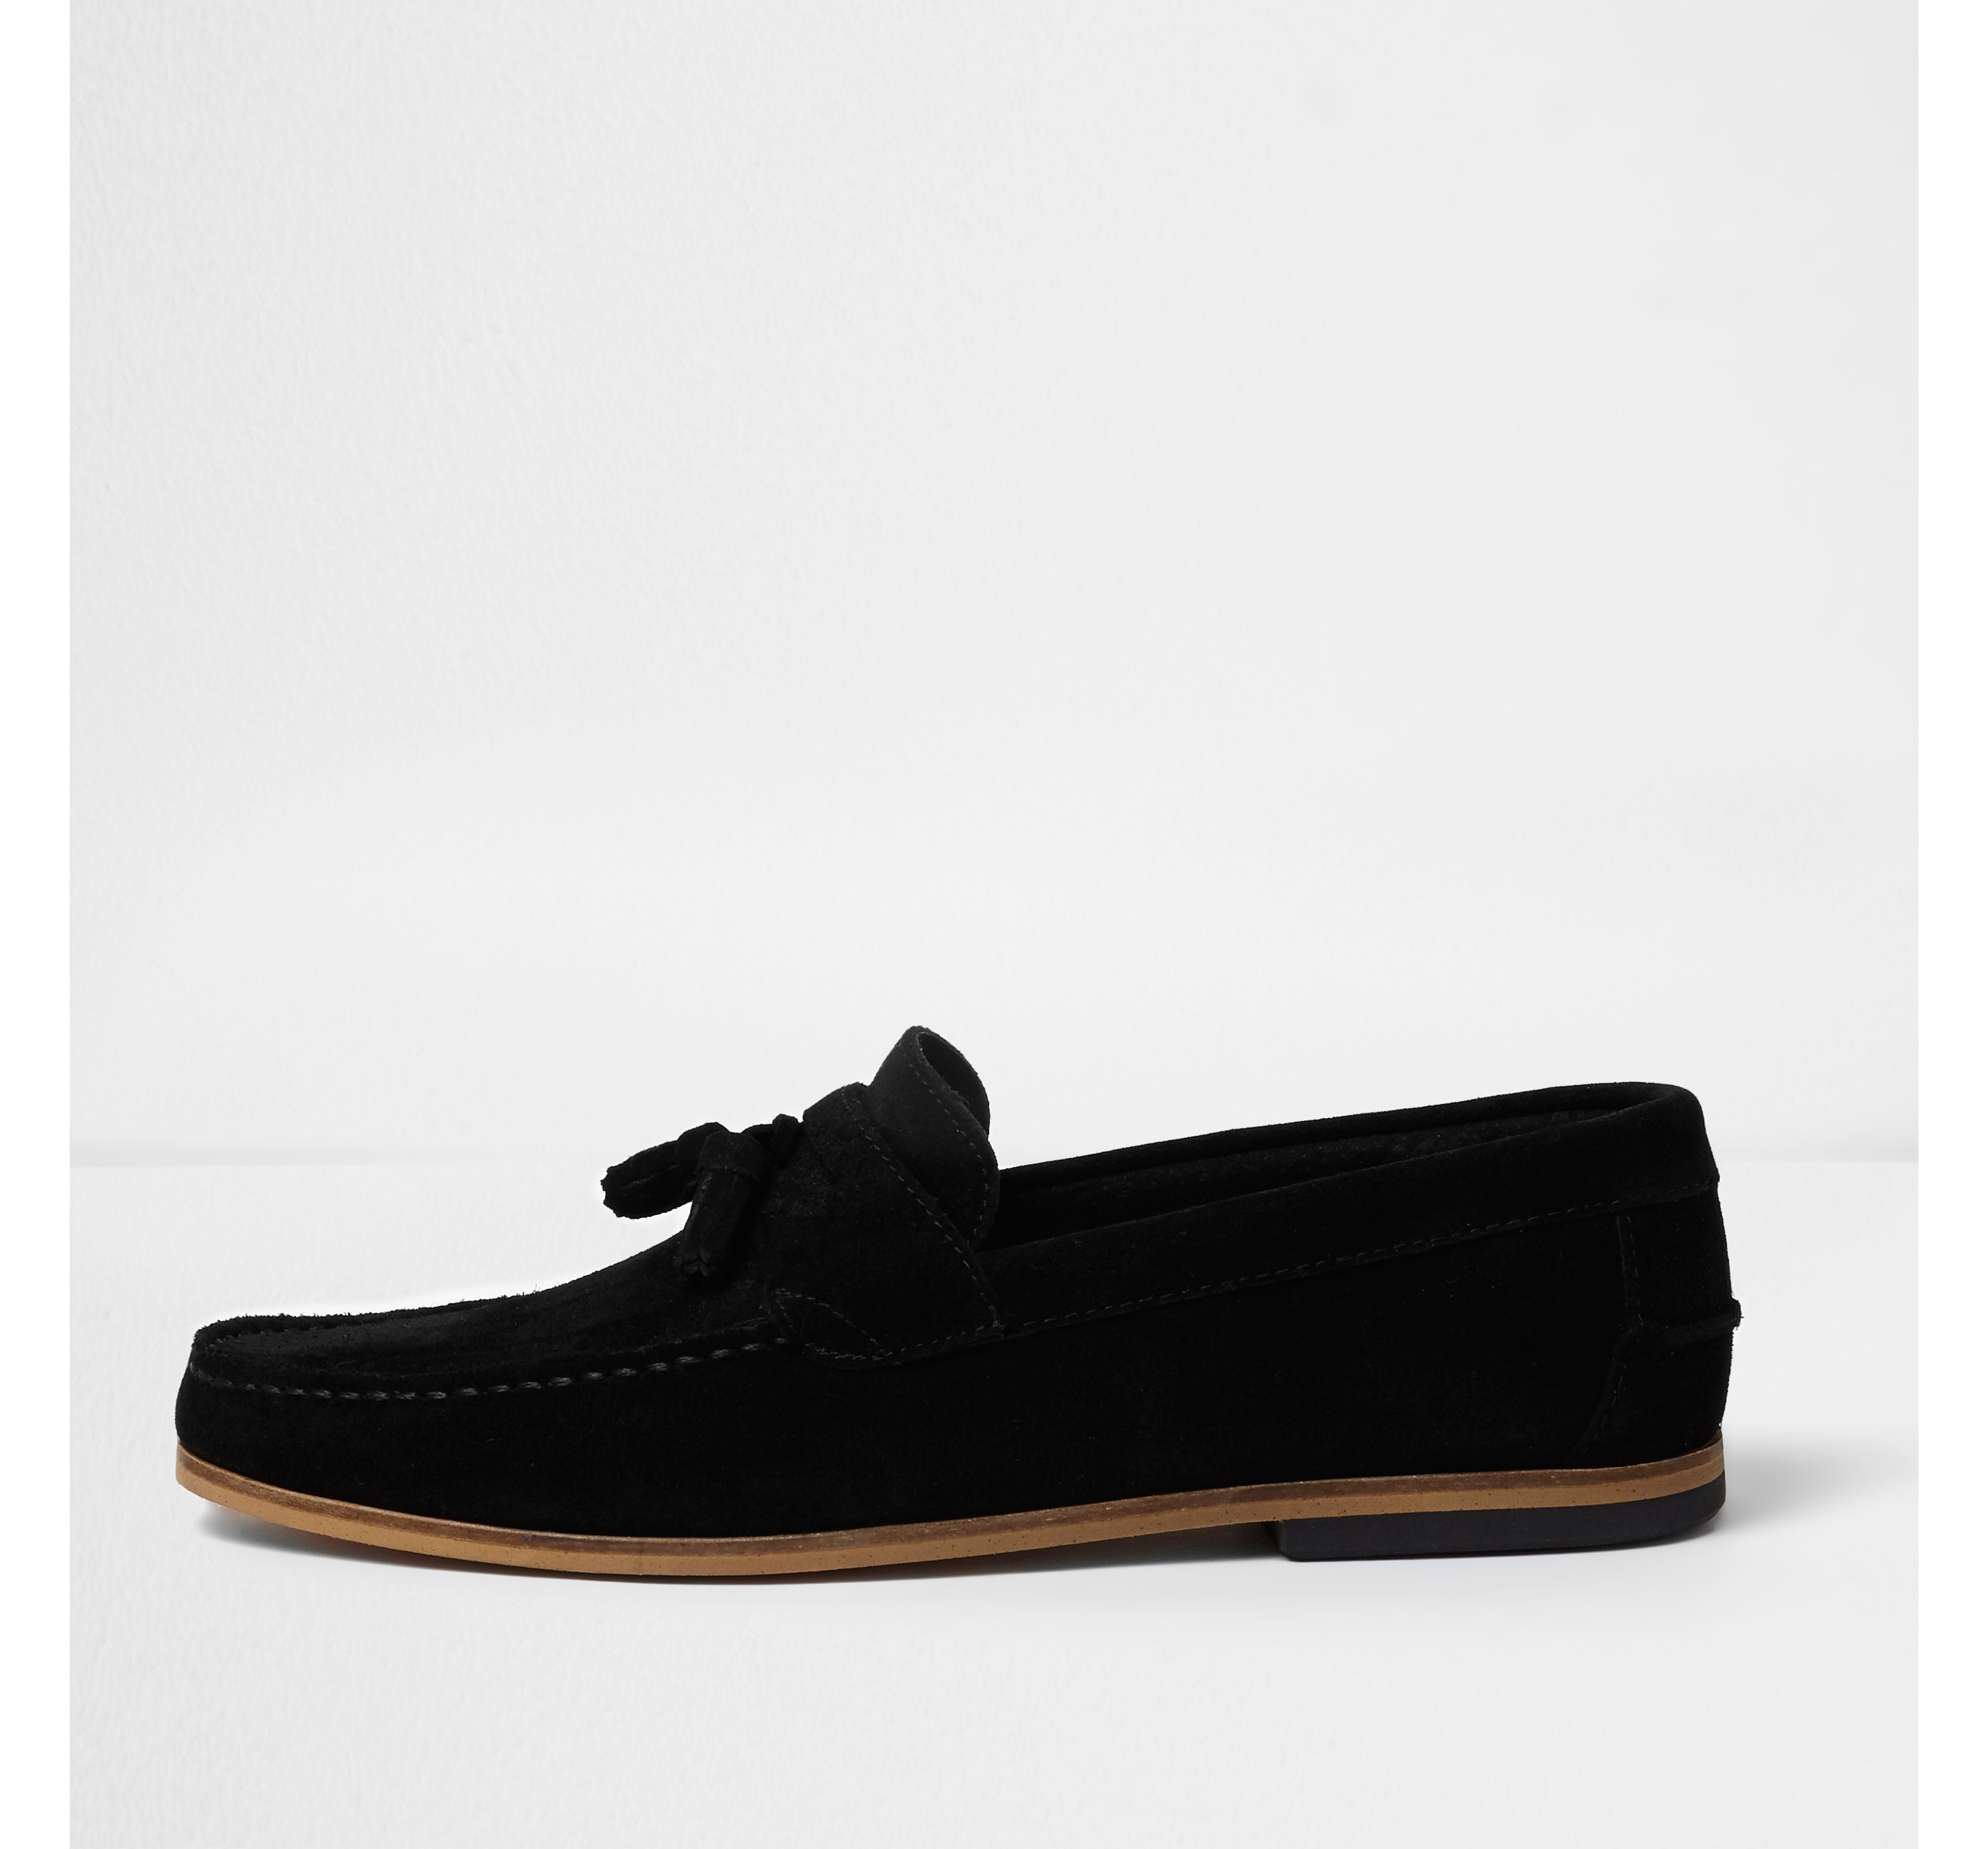 403734c44472c Mens Black suede tassel loafers by River ... — Thread